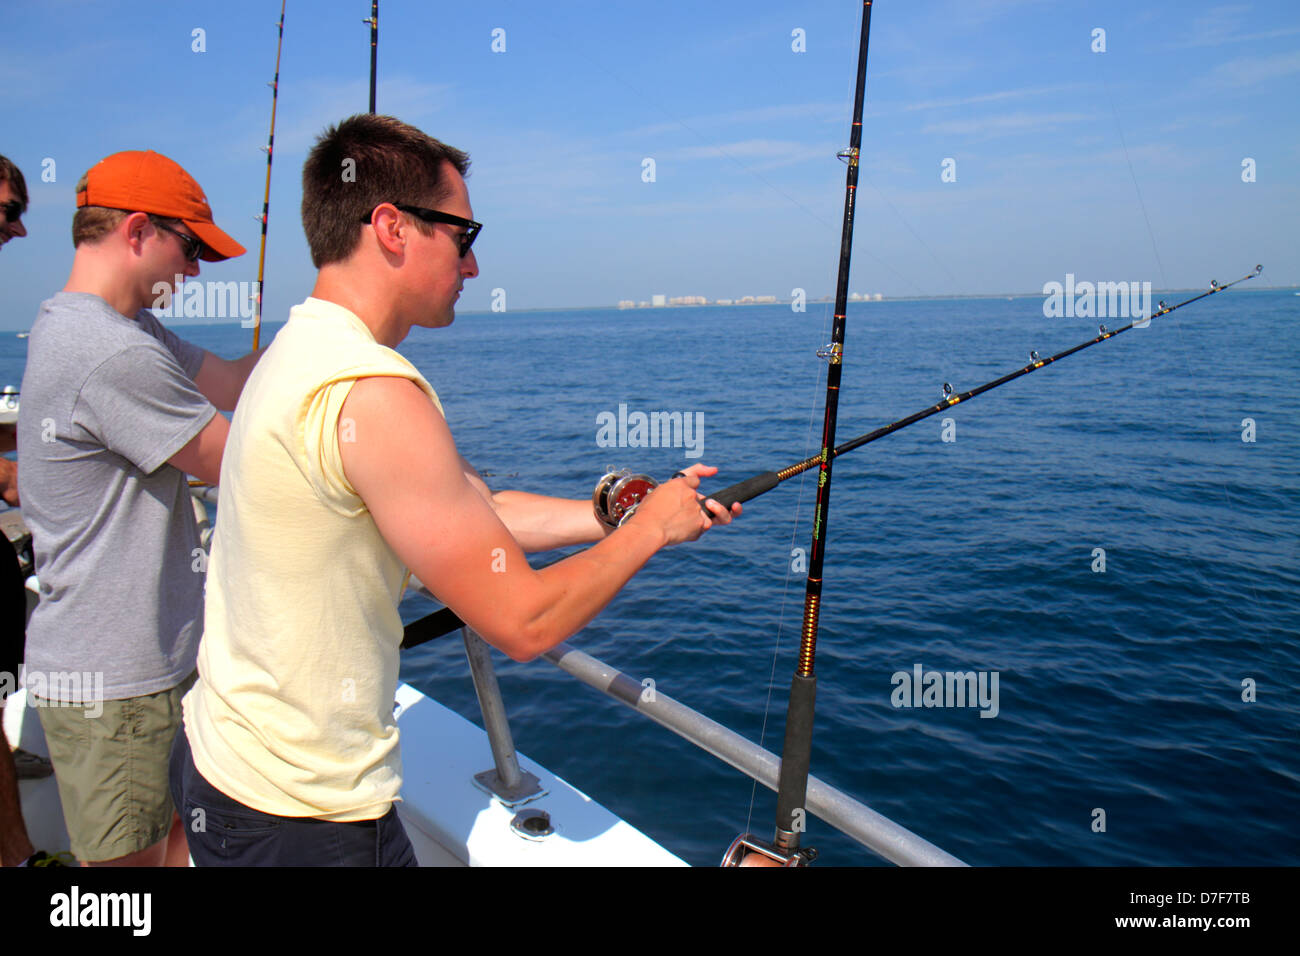 Miami Beach Florida Atlantic Ocean water charter fishing boat onboard man fair skin sunburn rods deep sea - Stock Image